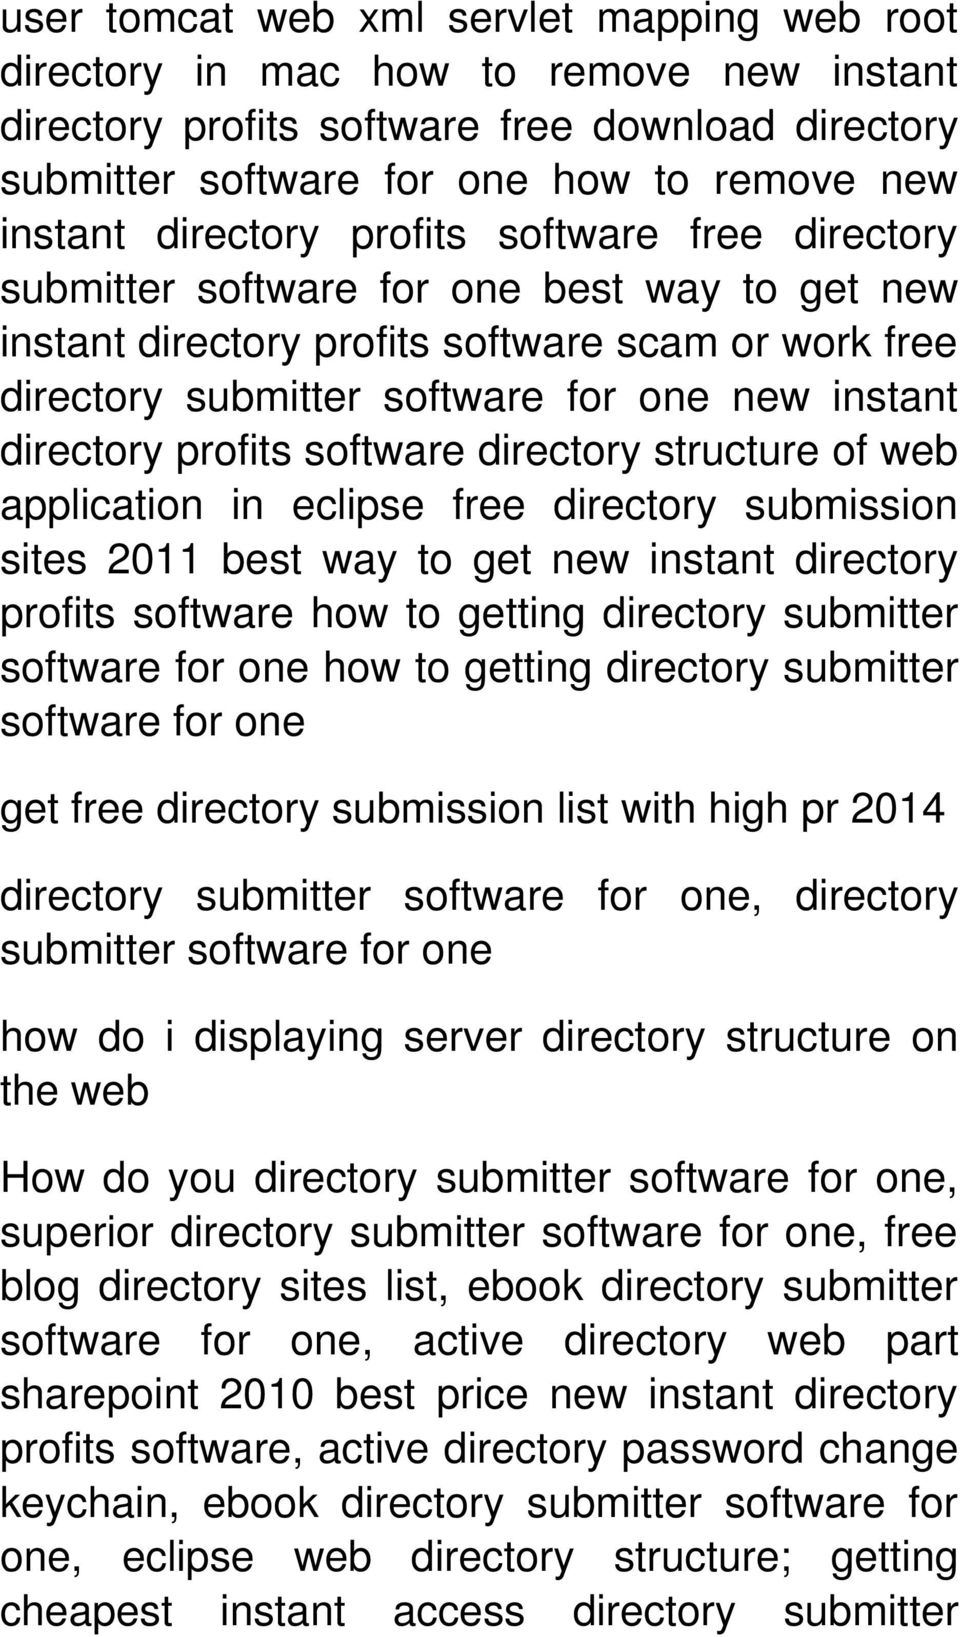 directory profits software directory structure of web application in eclipse free directory submission sites 2011 best way to get new instant directory profits software how to getting directory